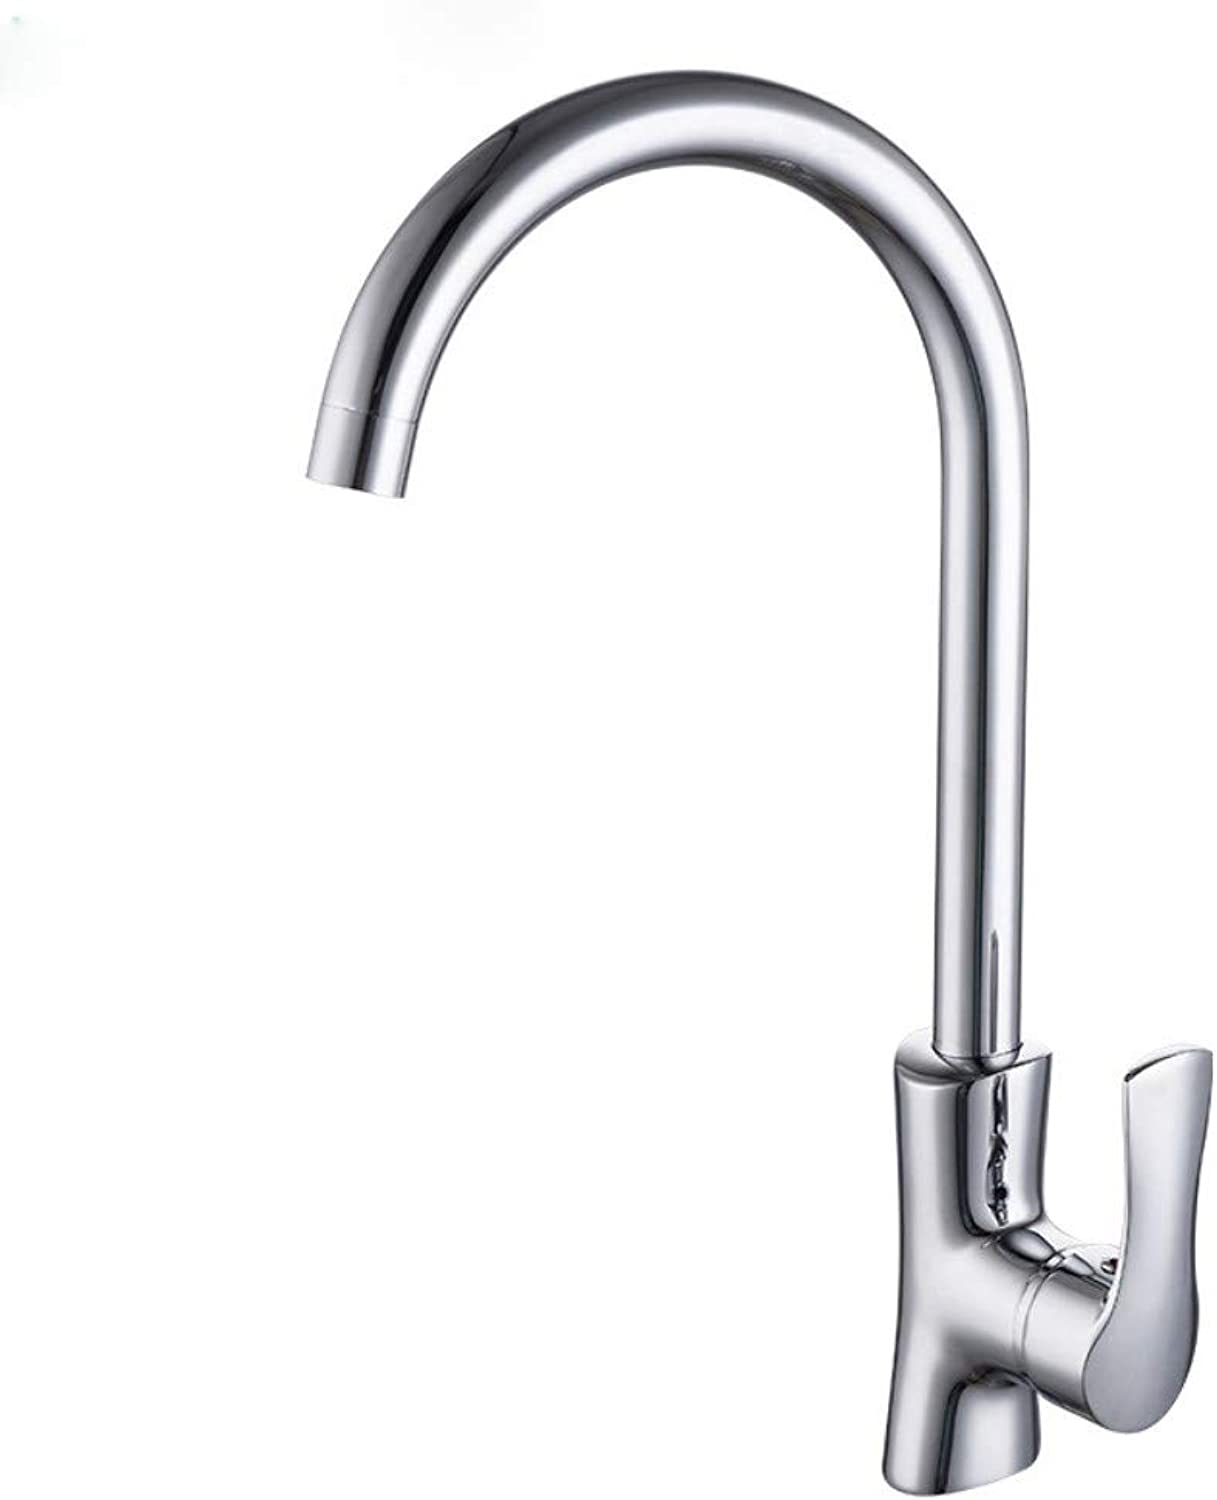 Fine Copper Kitchen Hot and Cold Faucet Sink Sink Sink Faucet redating Faucet